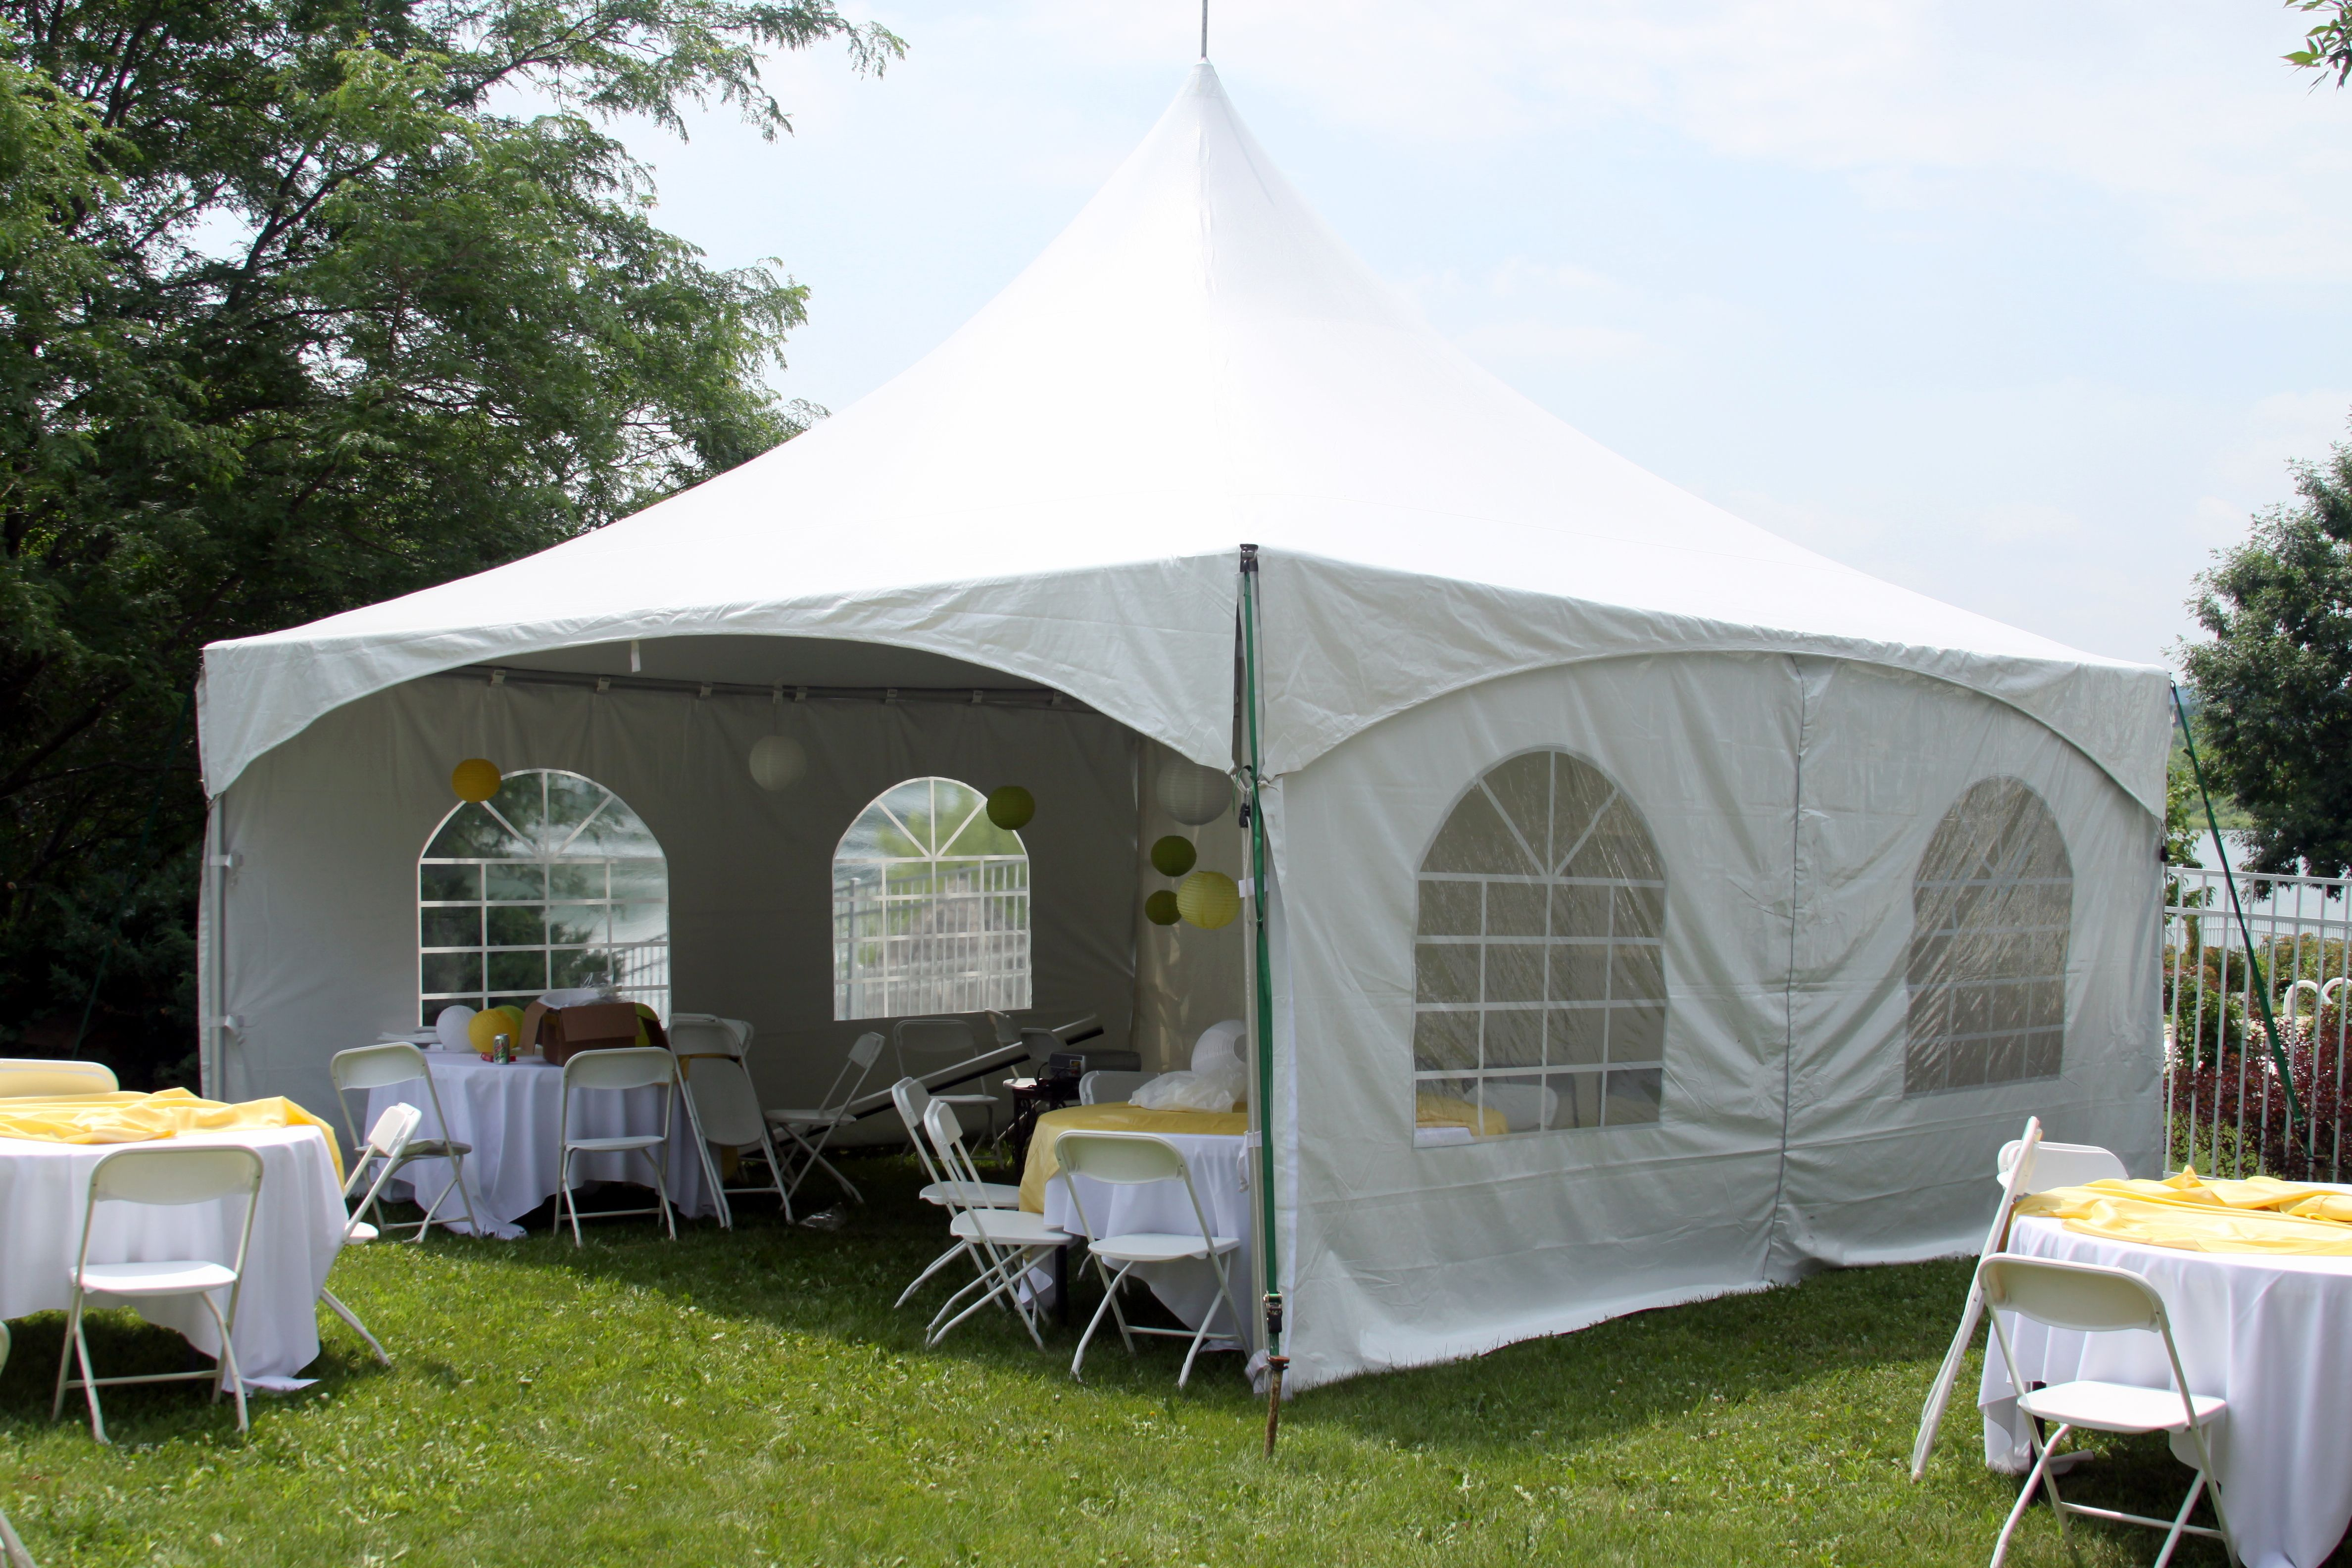 White Canopy Tent Awesome & White Canopy Tent Awesome | Awesome Tents | Pinterest | White ...